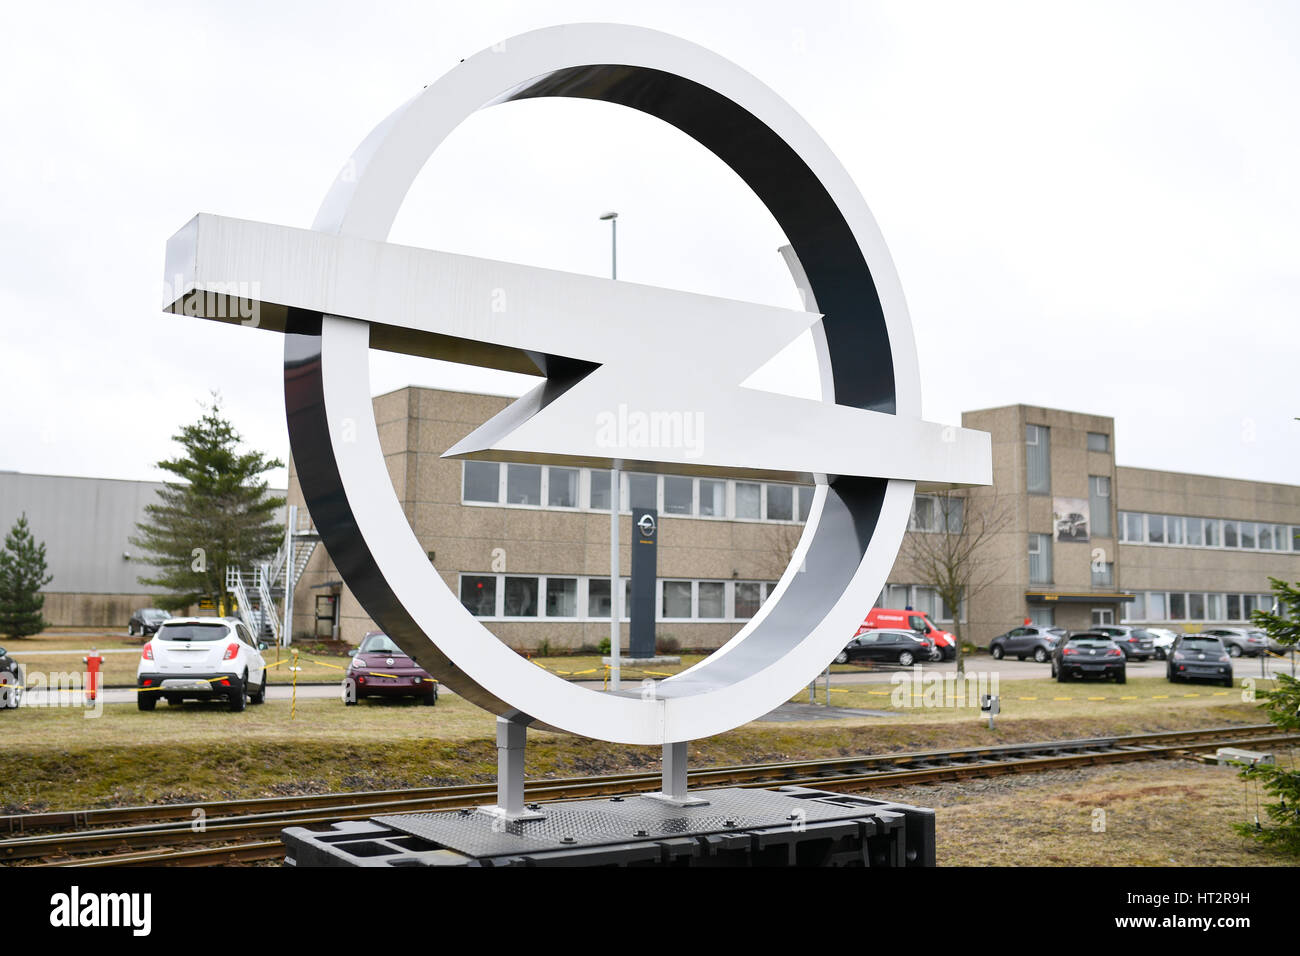 Kaiserlautern, Germany. 6th Mar, 2017. A logo of the car manufacturer Opel at the factory in Kaiserlautern, Germany, Stock Photo